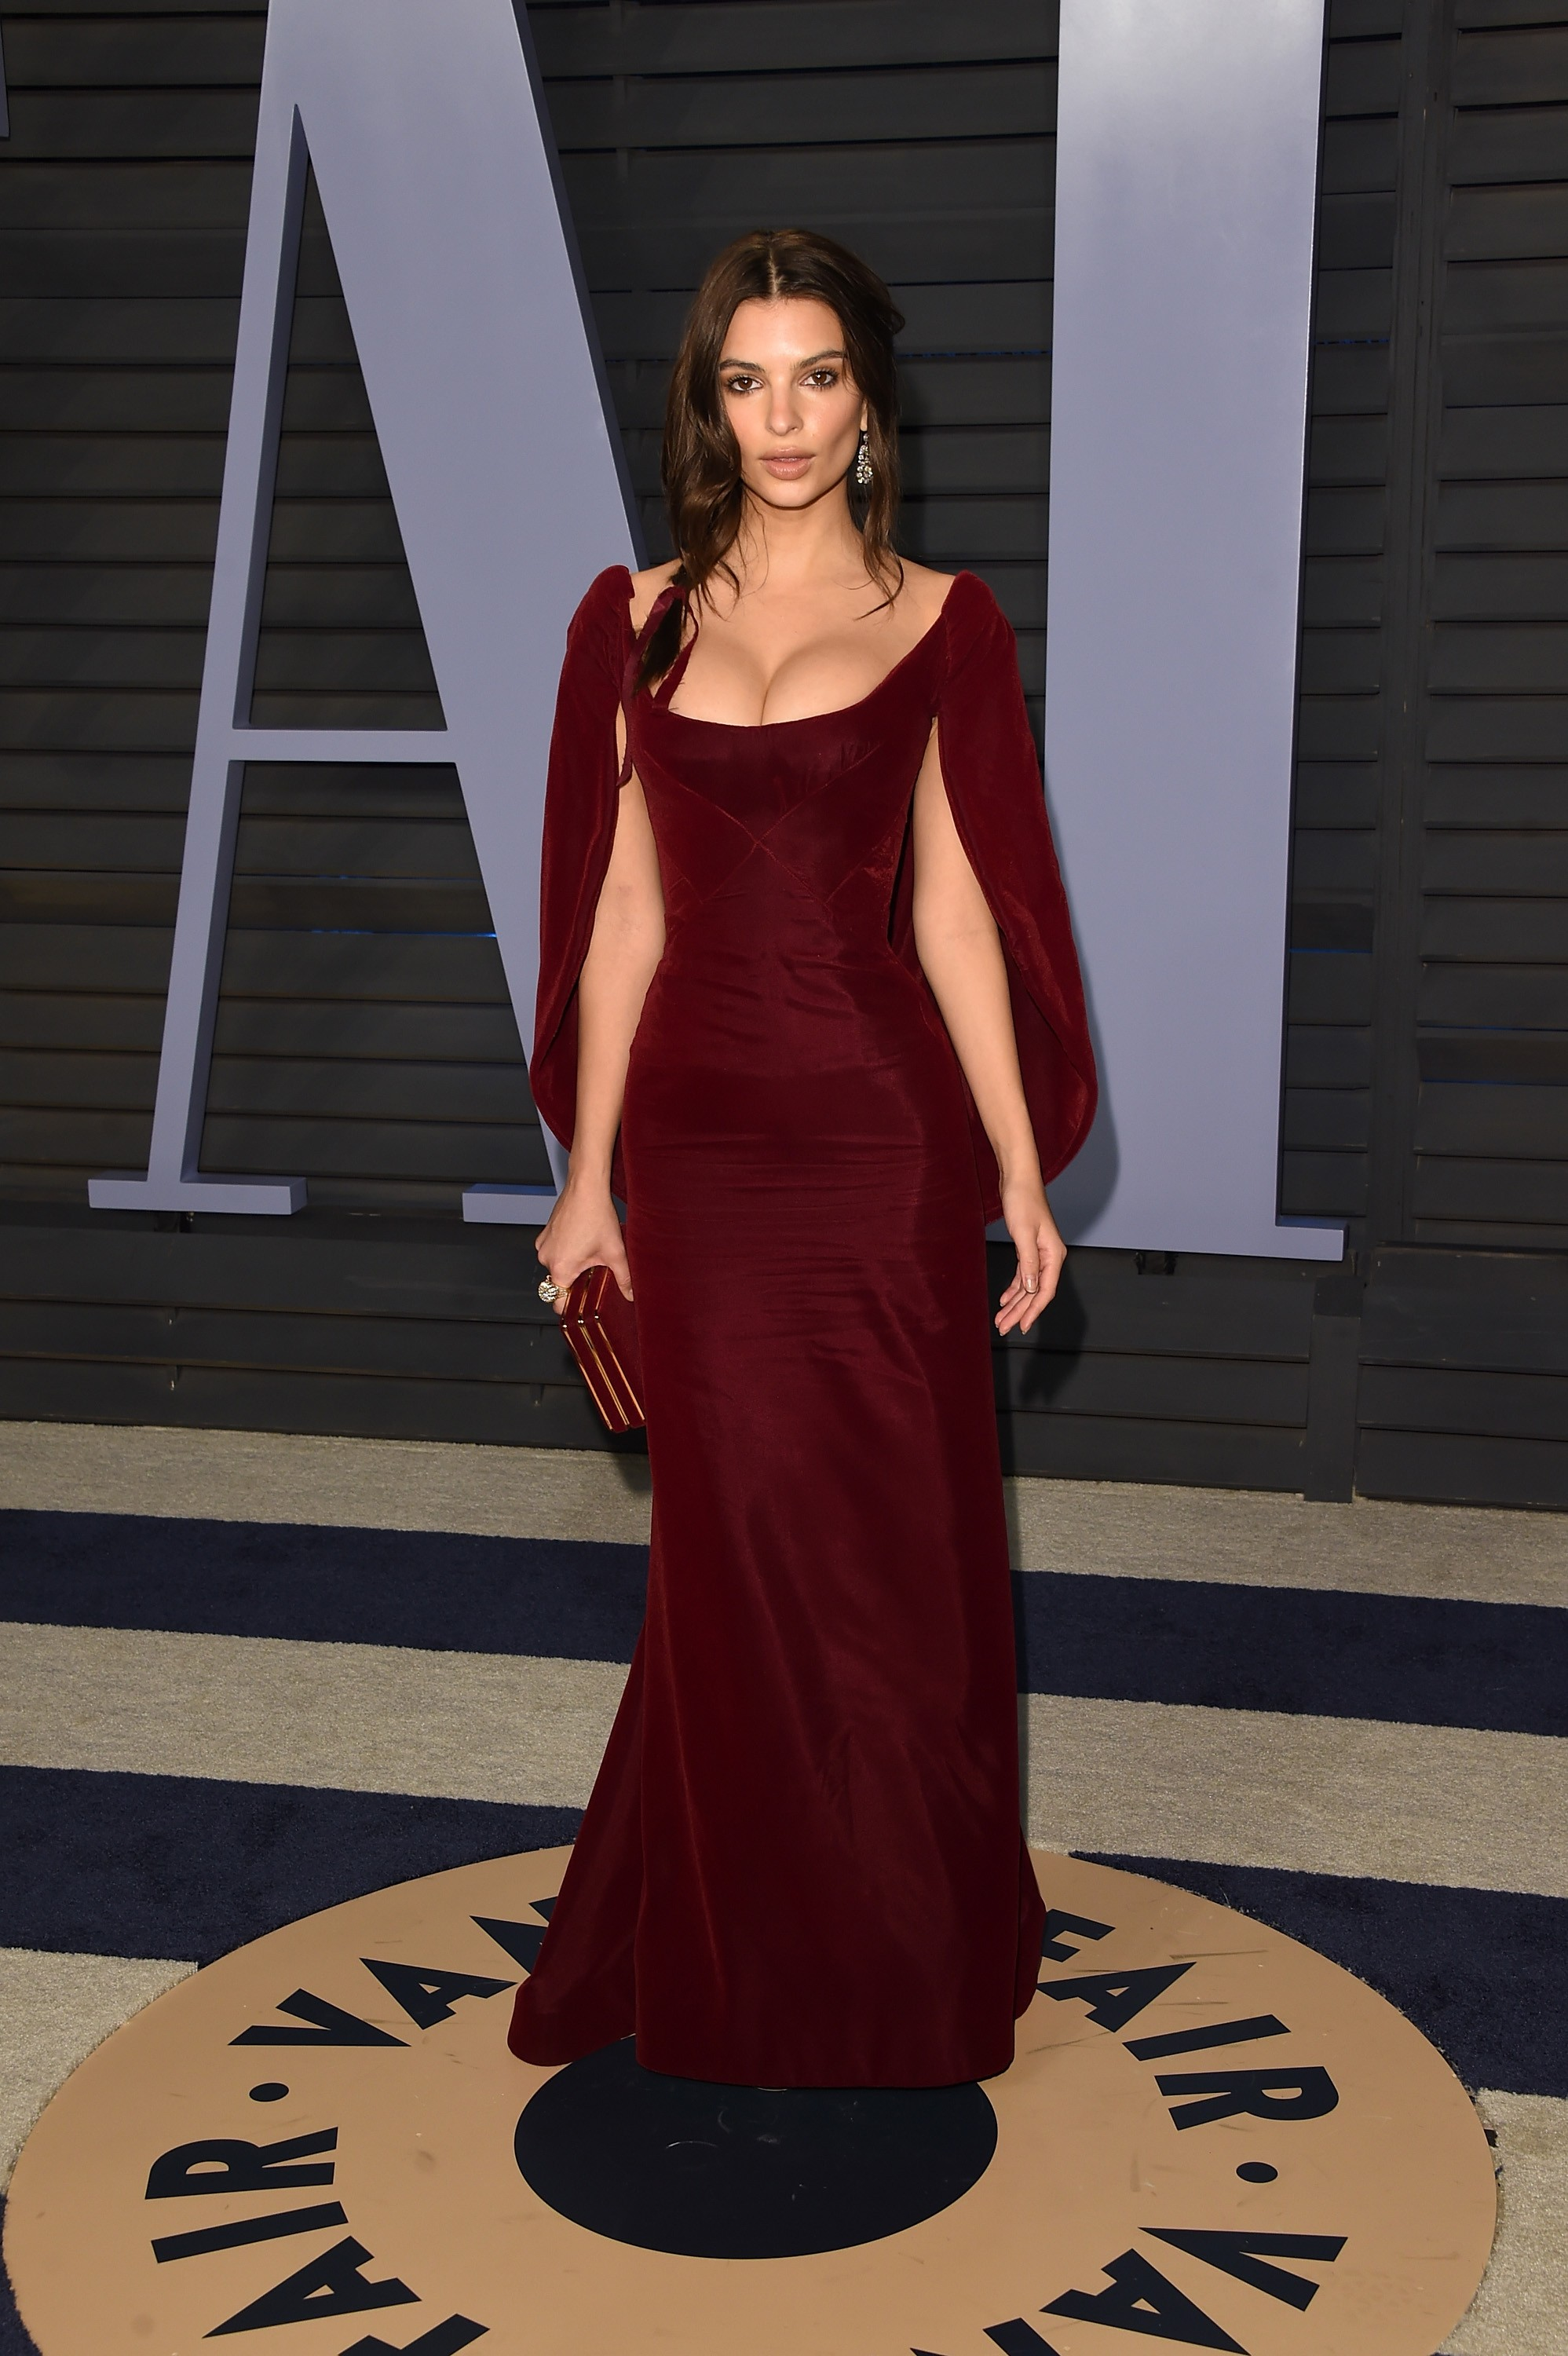 Emily Ratajkowski Pictures from Oscar 2018 Party - New Look Photo Shoot - Sexy Actress Pictures | Hot Actress Pictures - ActressSnaps.com